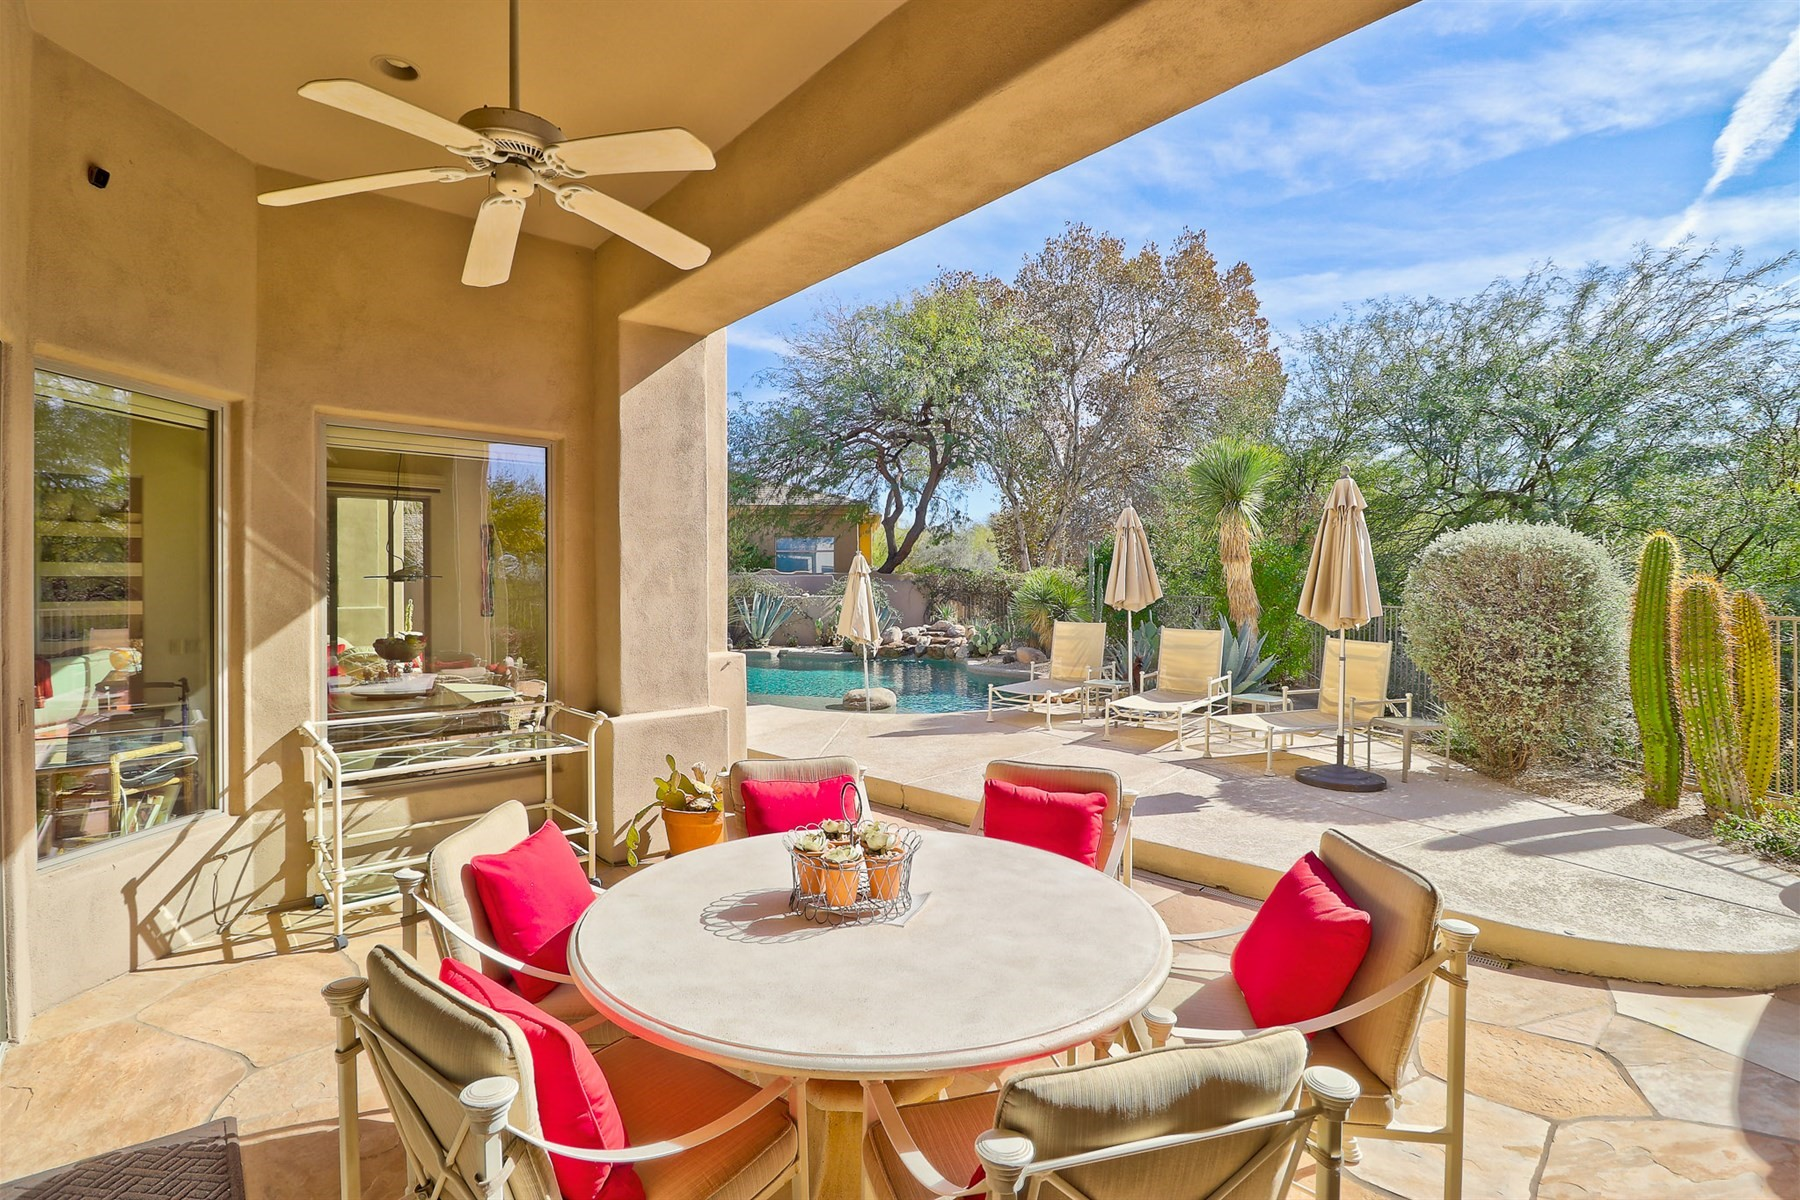 Single Family Home for Sale at Beautiful and Meticulous Residence in Troon North 9687 E Peak View Rd, Scottsdale, Arizona, 85262 United States